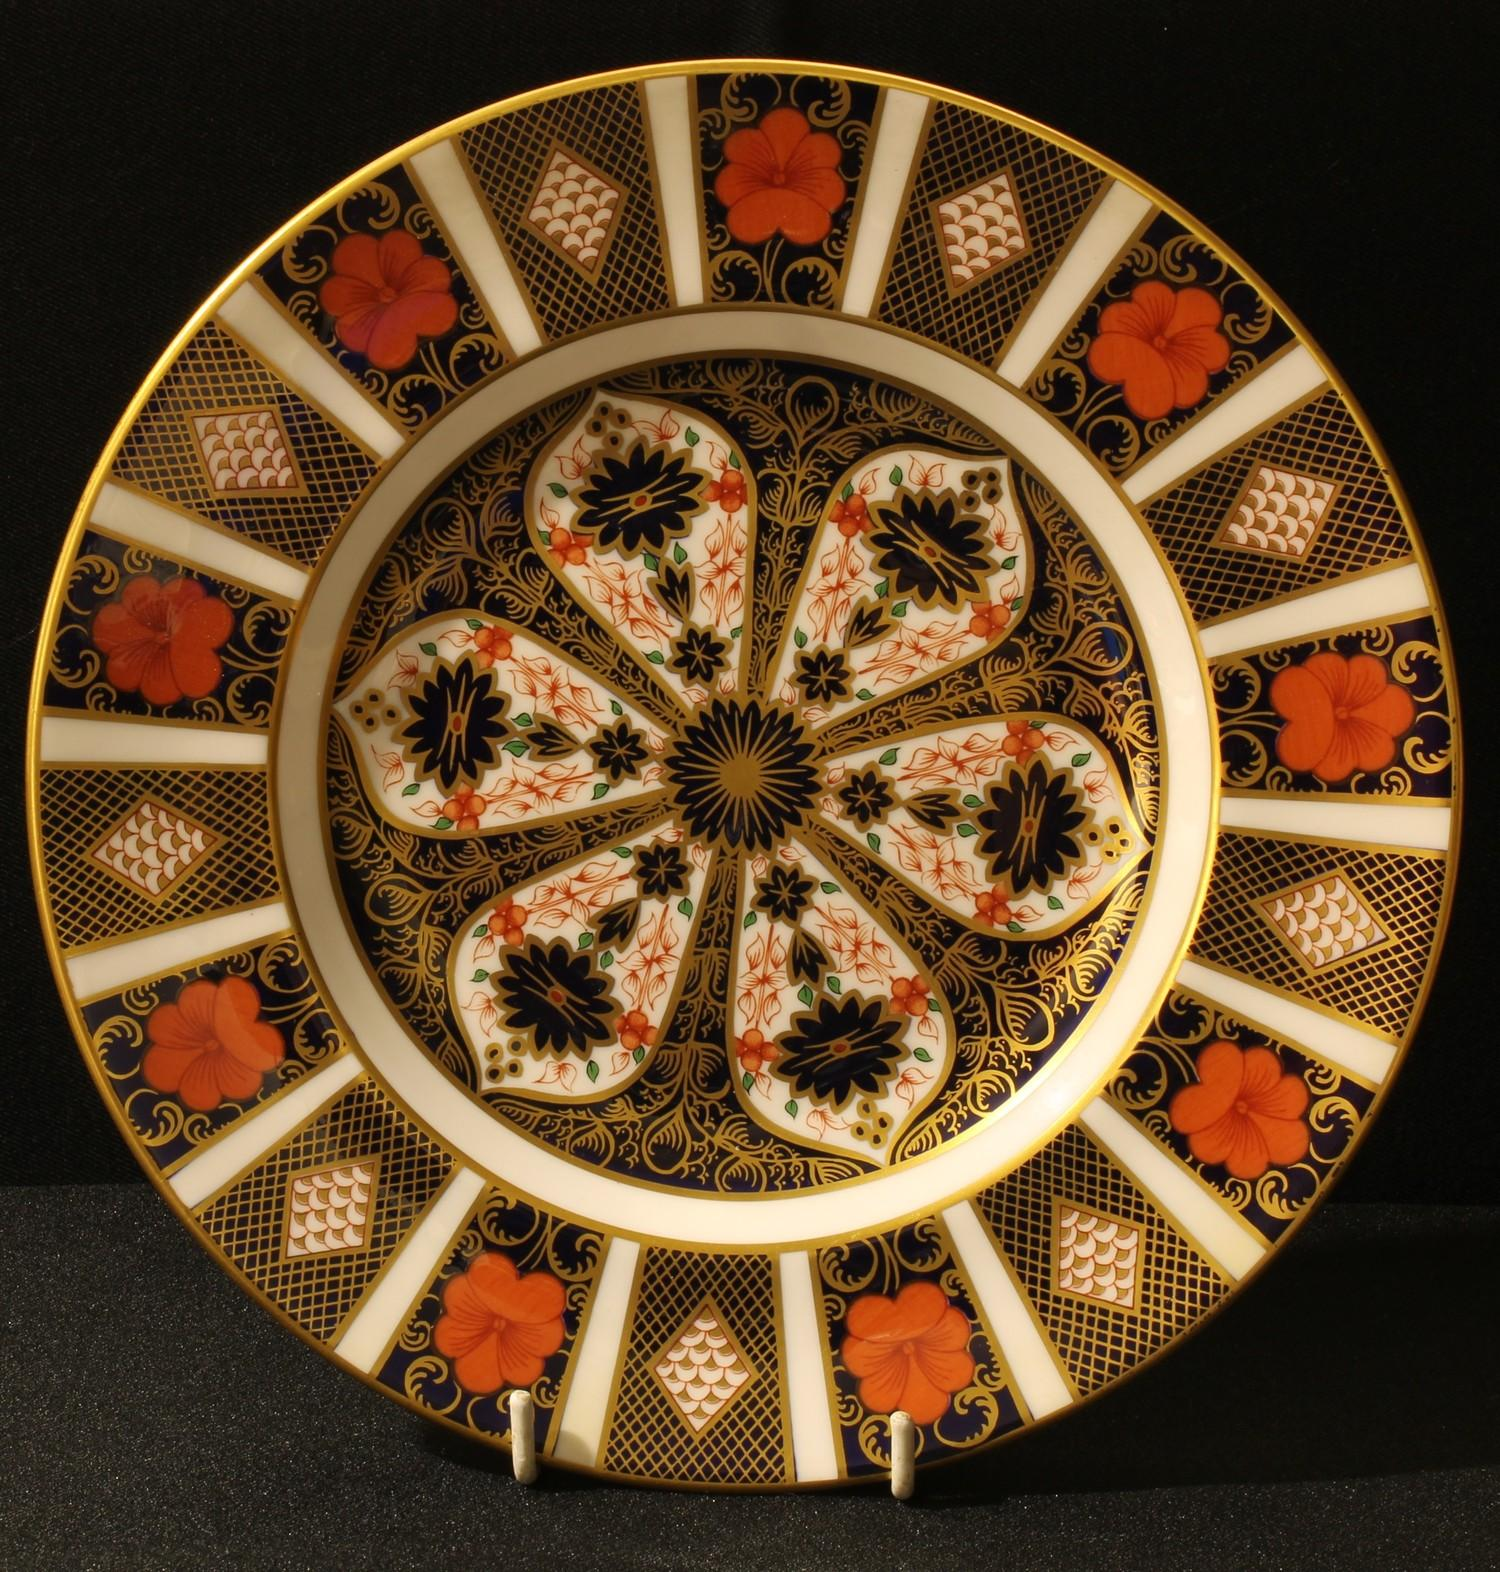 A Royal Crown Derby 1128 pattern plate, 23cm, first quality